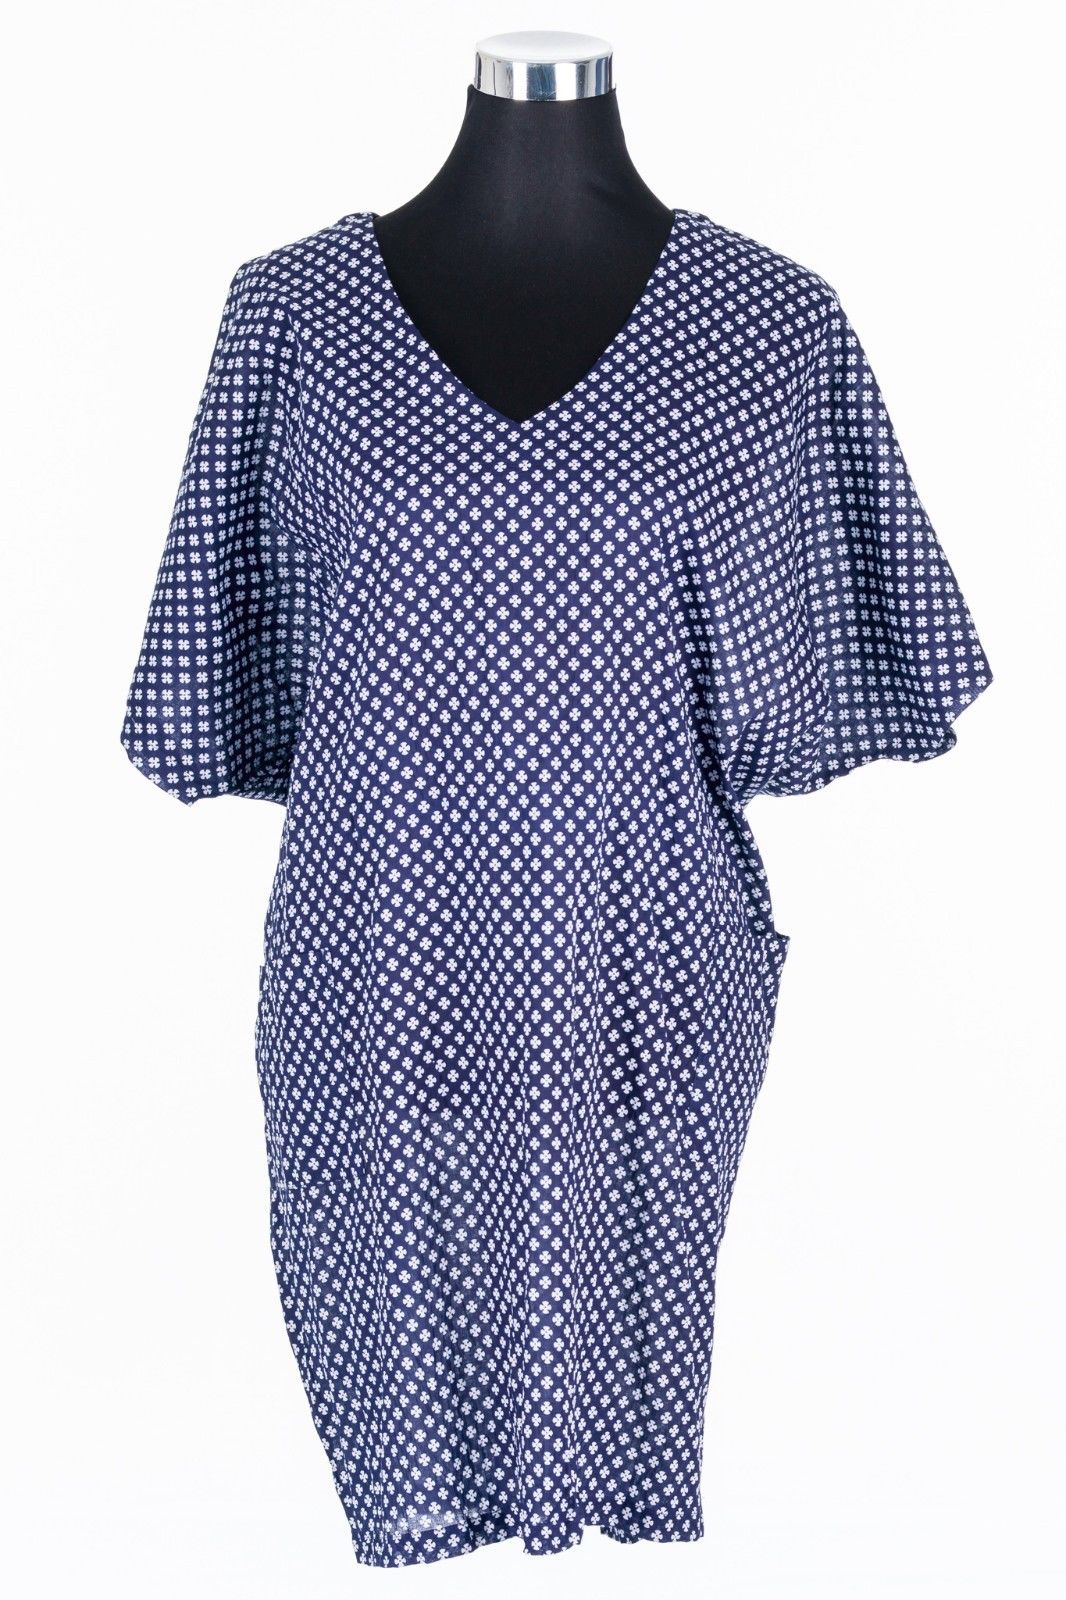 CASUAL-DRESS-PLUS-SIZE-BATWING-SLEEVE-NAVY-BLUE-PRINT-LOOSE-COOL-CASUAL-382139552454